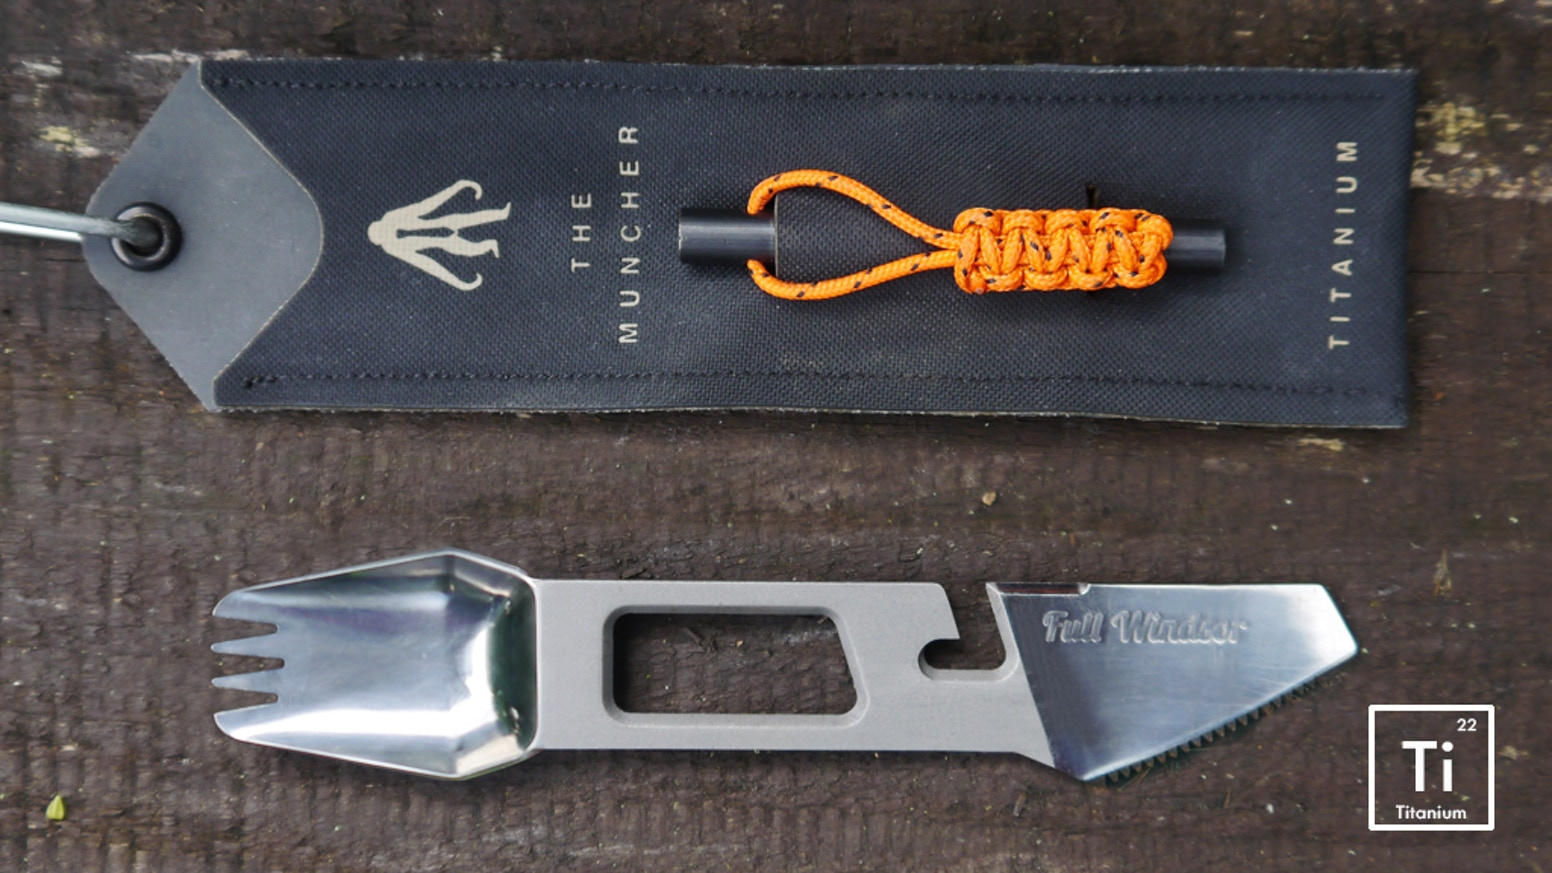 The world's most functional Camping Titanium Multi Utensil. Made from aerospace grade titanium weighing just 0.7oz / 20 grams.